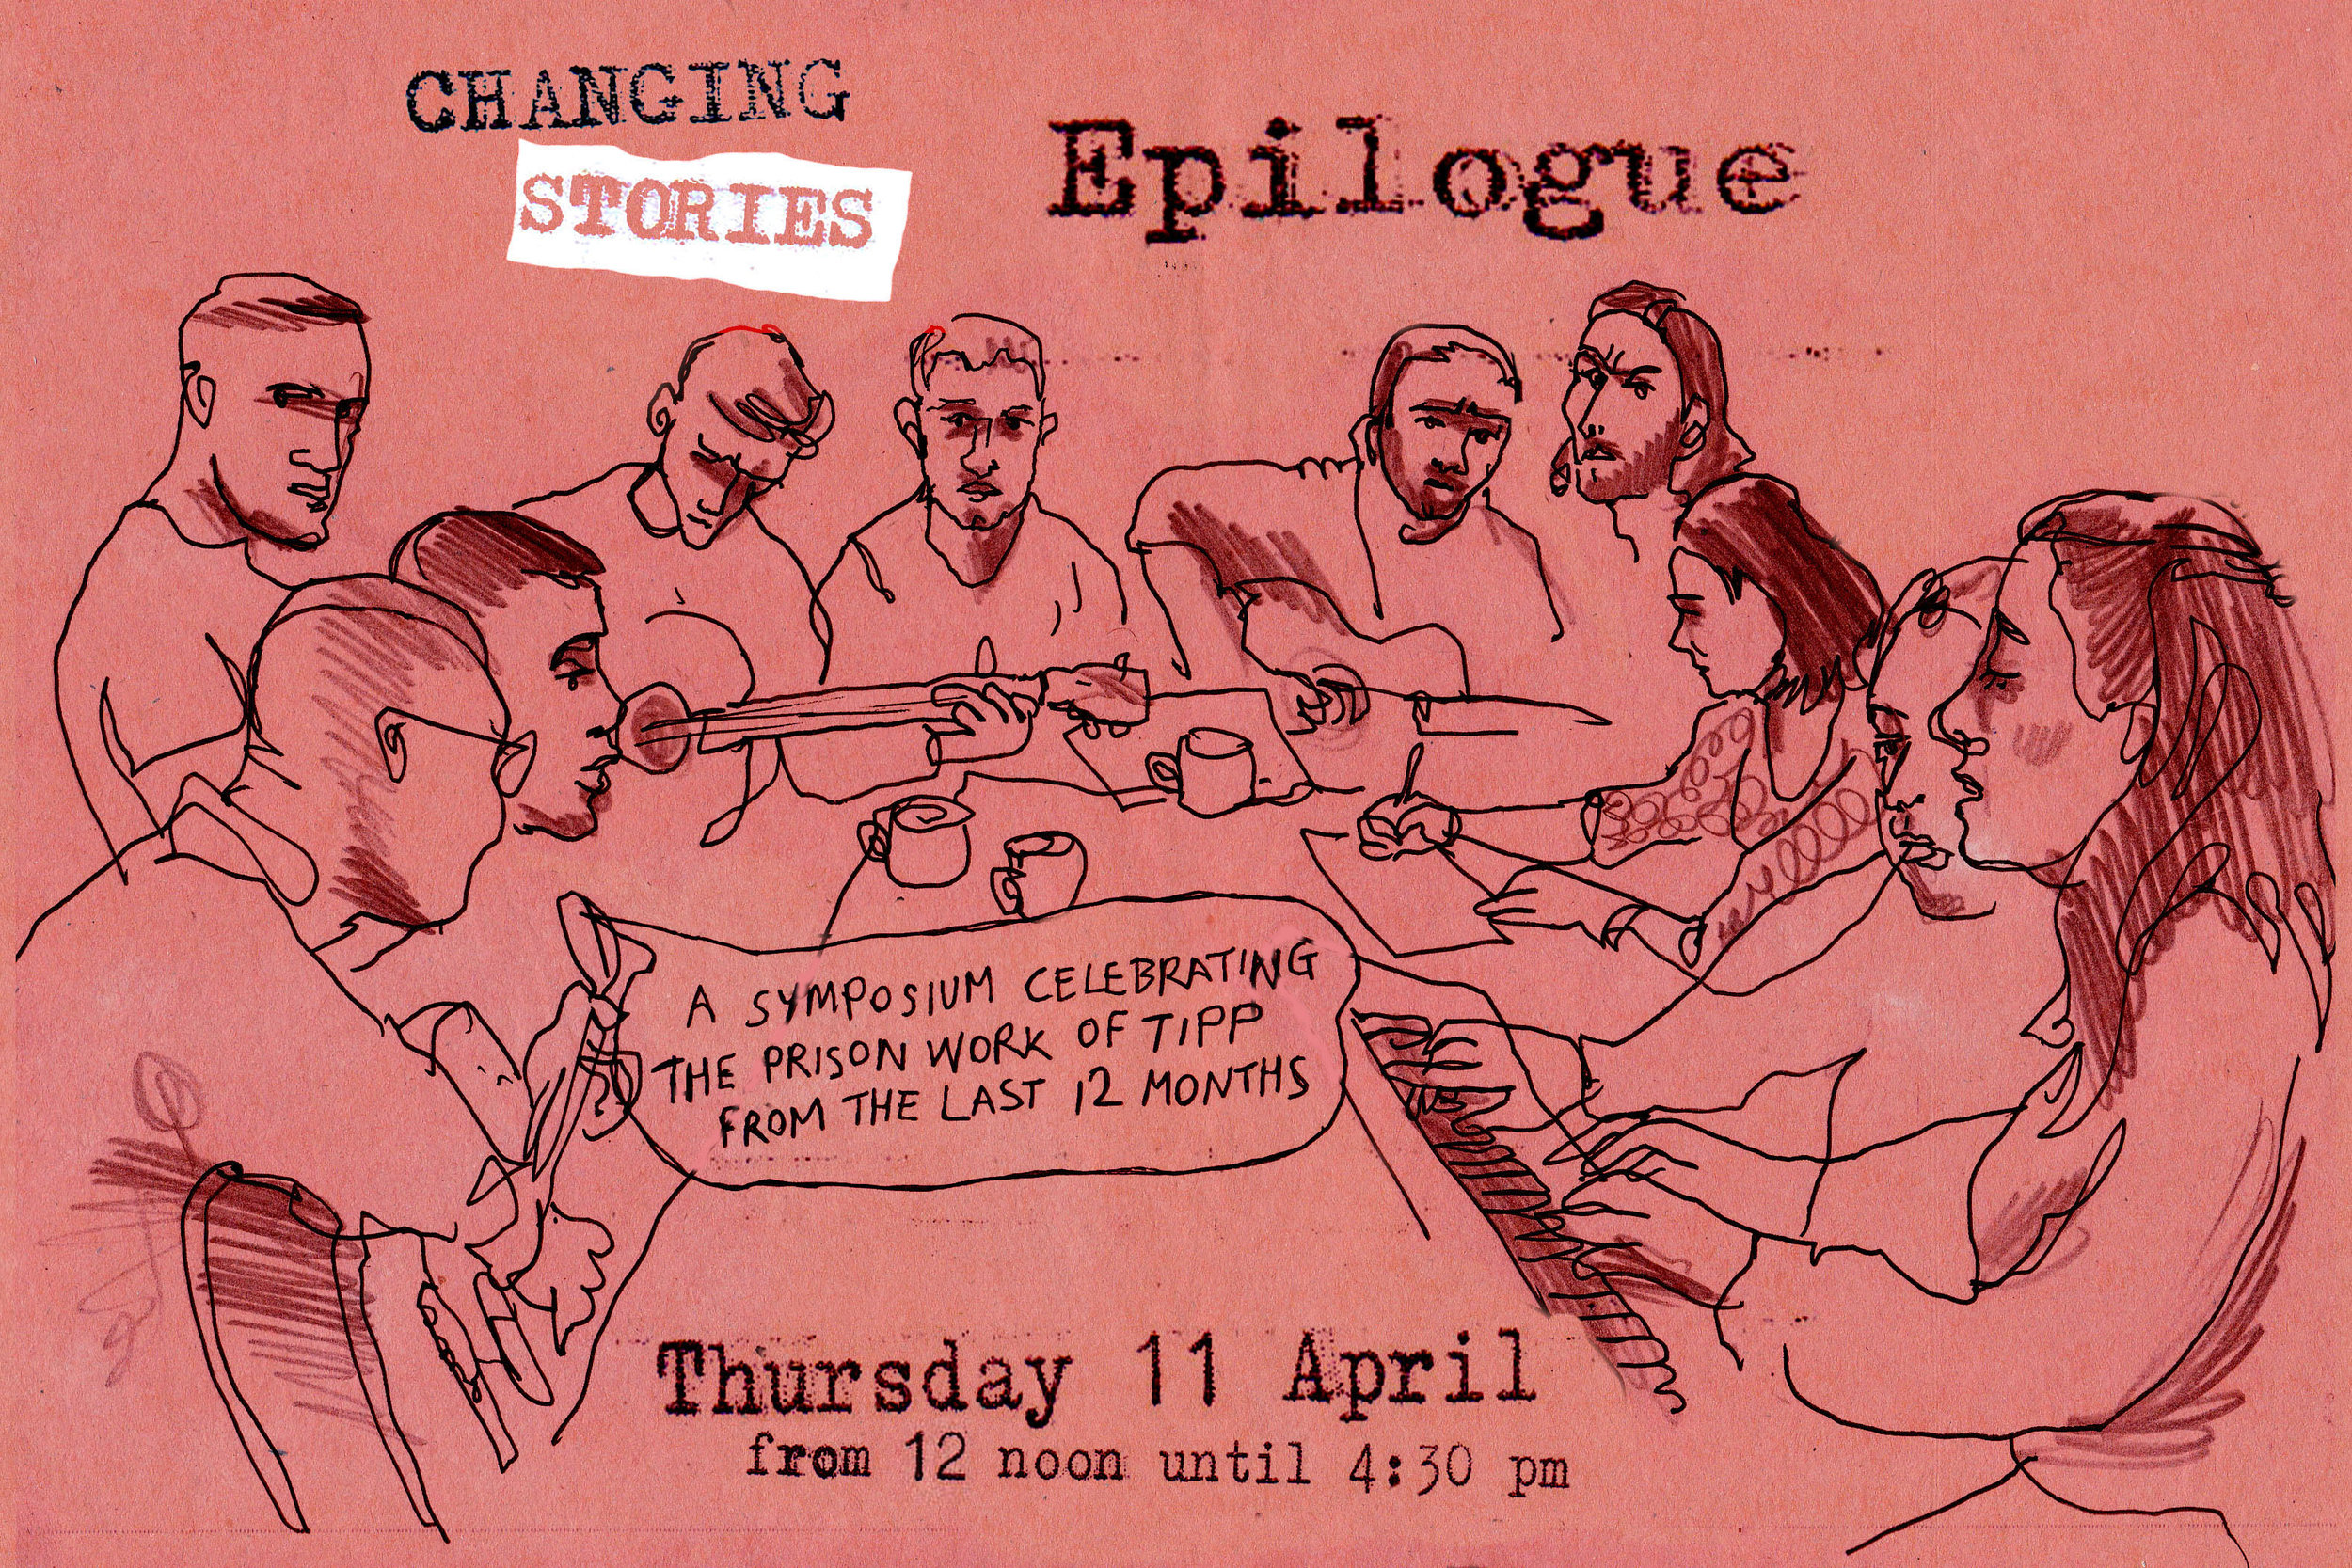 Epilogue invite-front.jpg